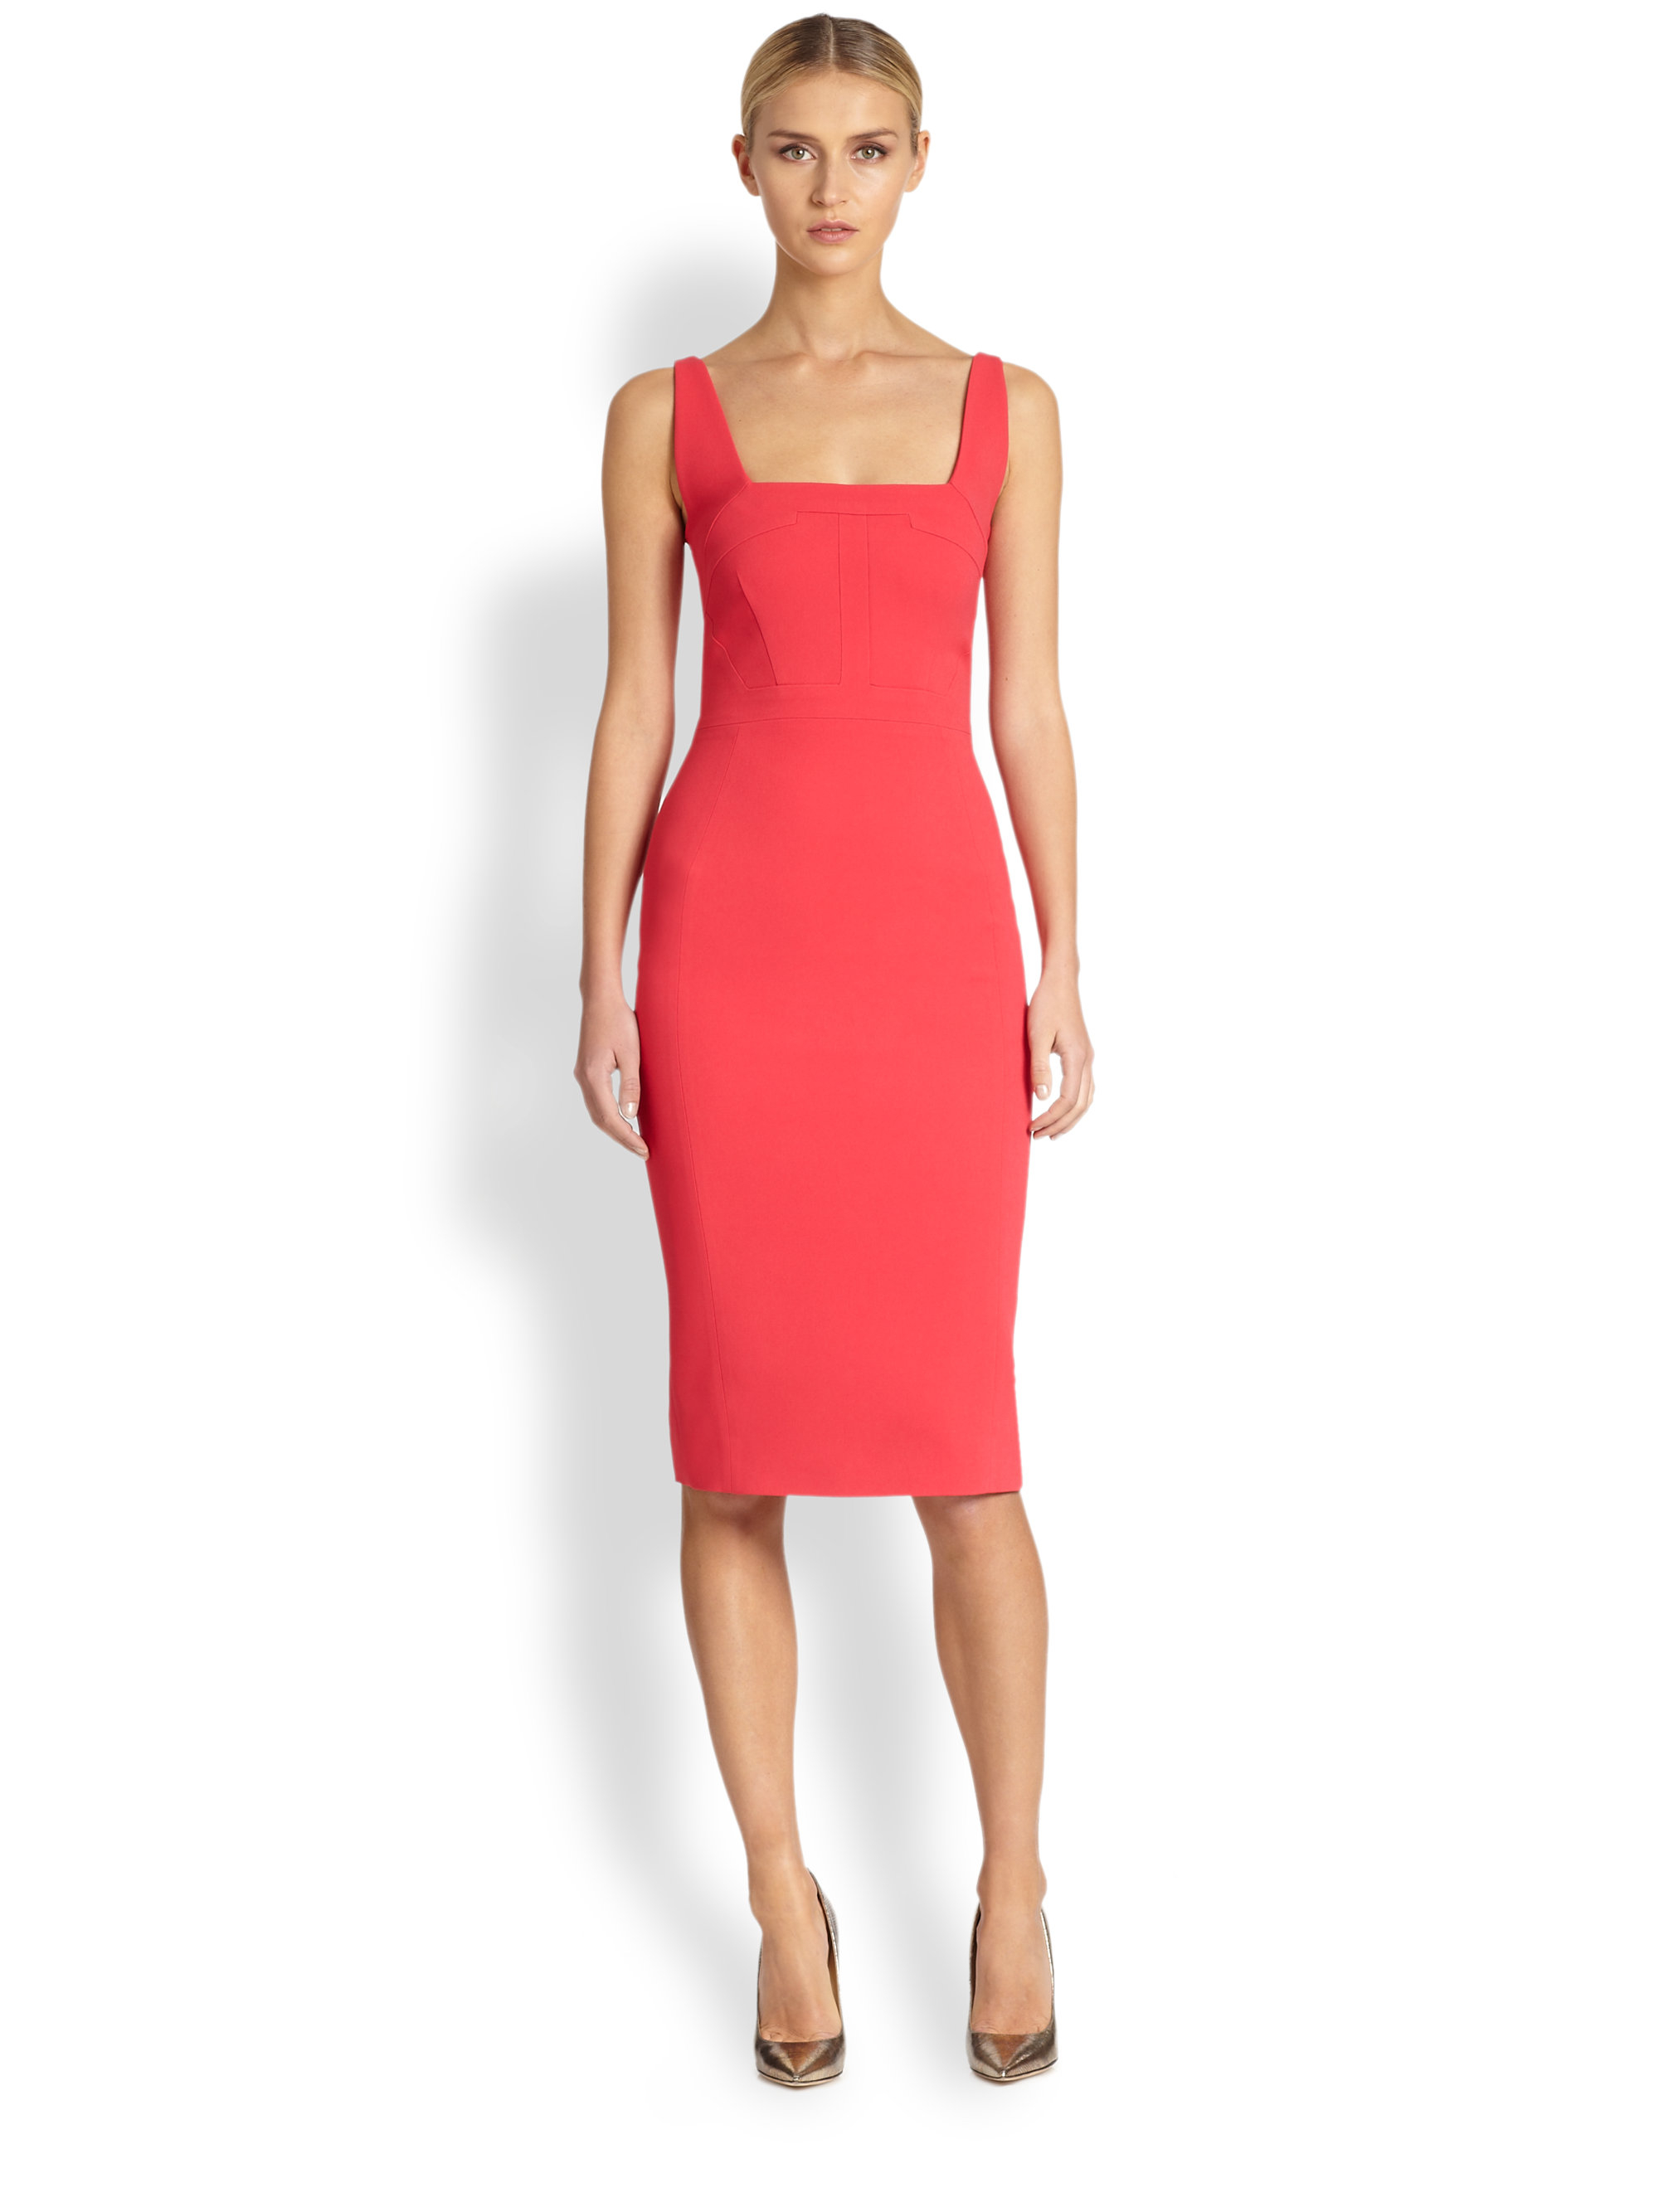 Antonio berardi Sleeveless Sheath Dress in Orange | Lyst